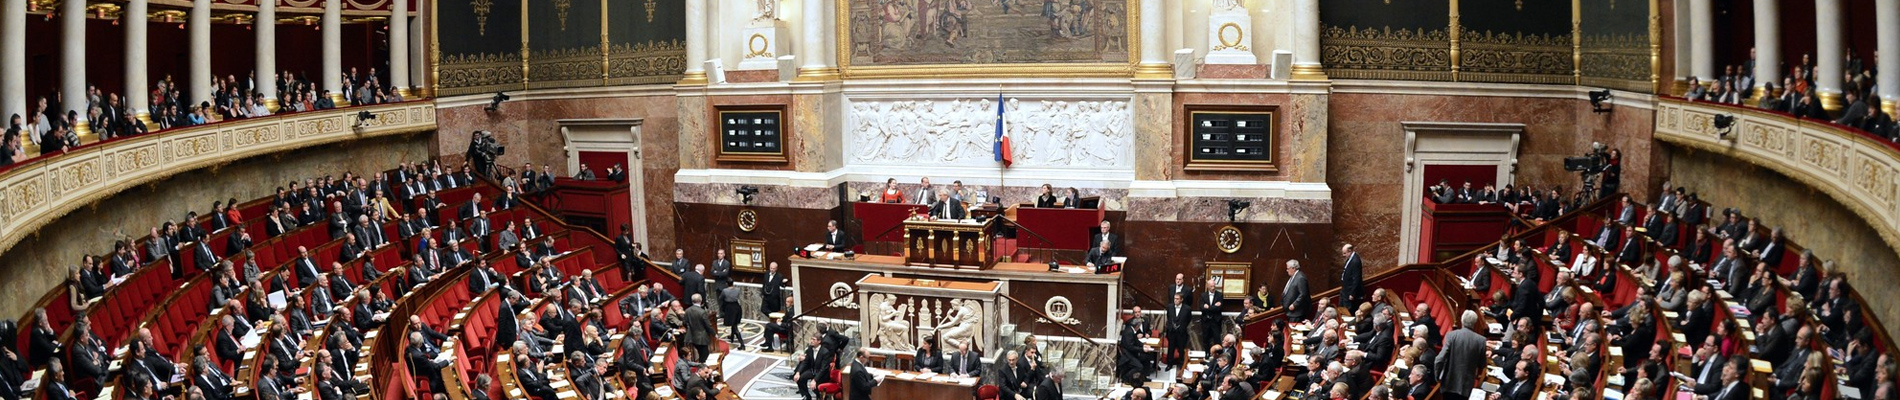 christophe-arend-depute-moselle-assemblee-nationale